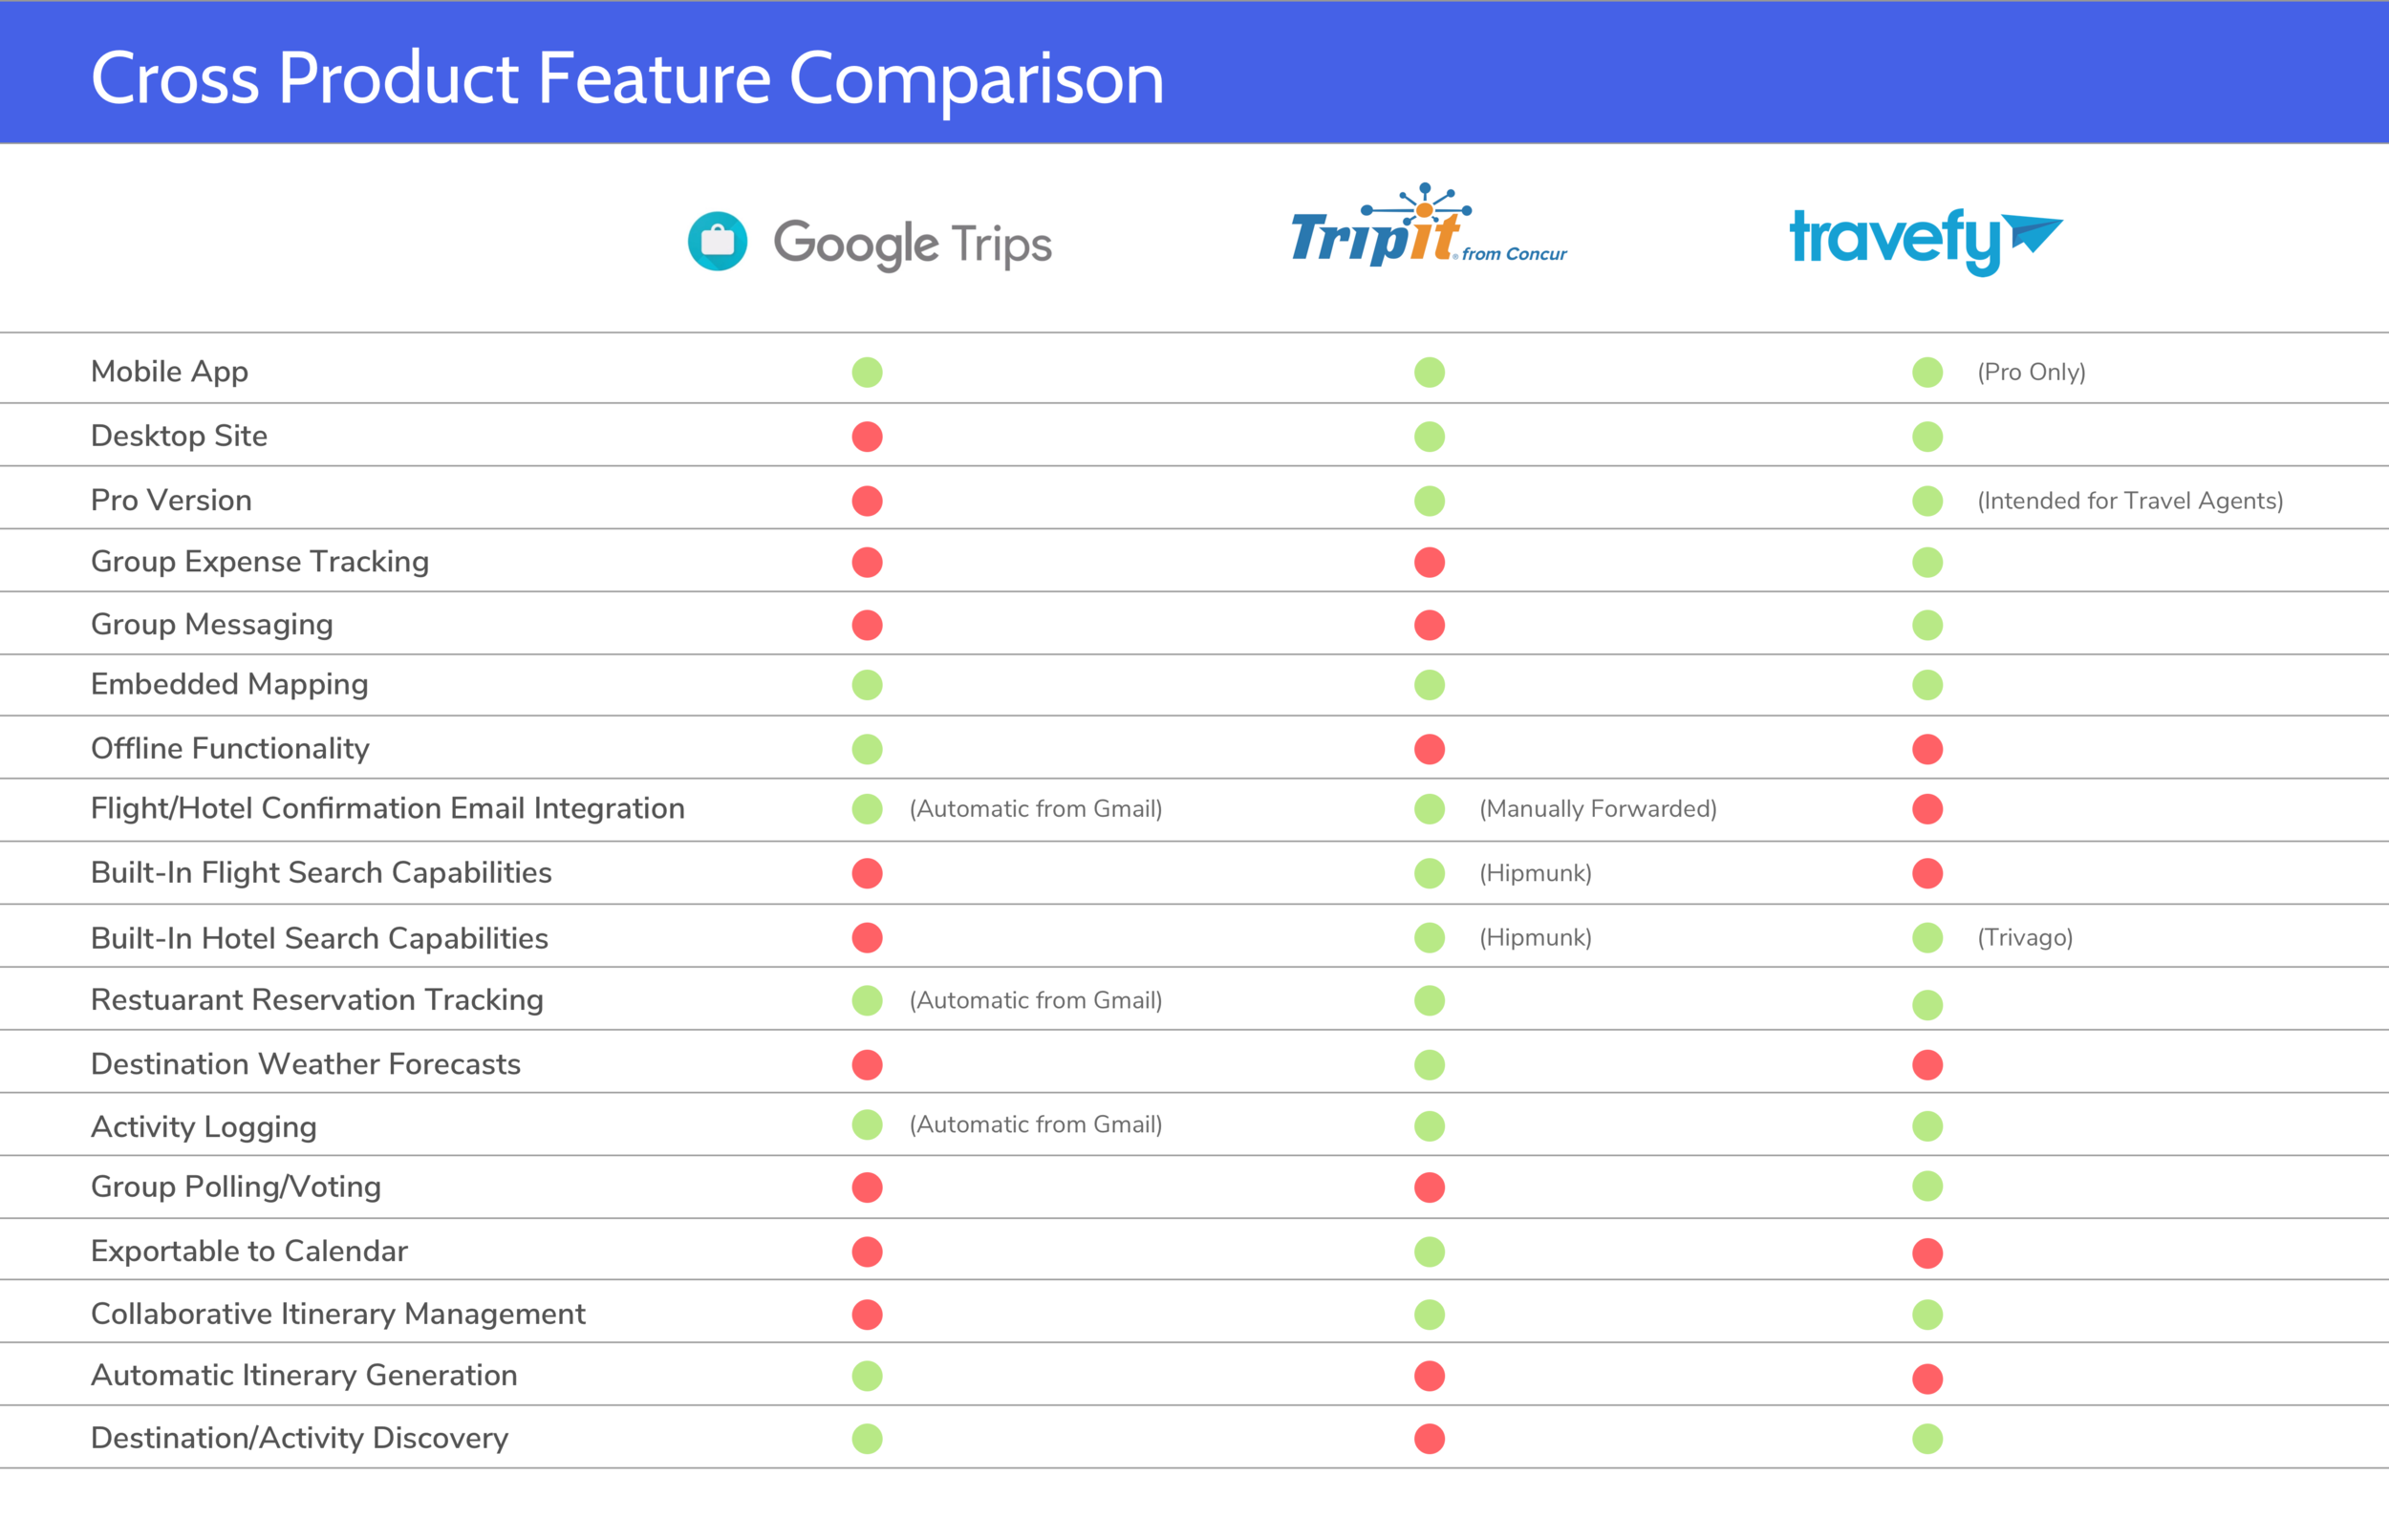 Competitive analysis of features currently offered within similar products on the market